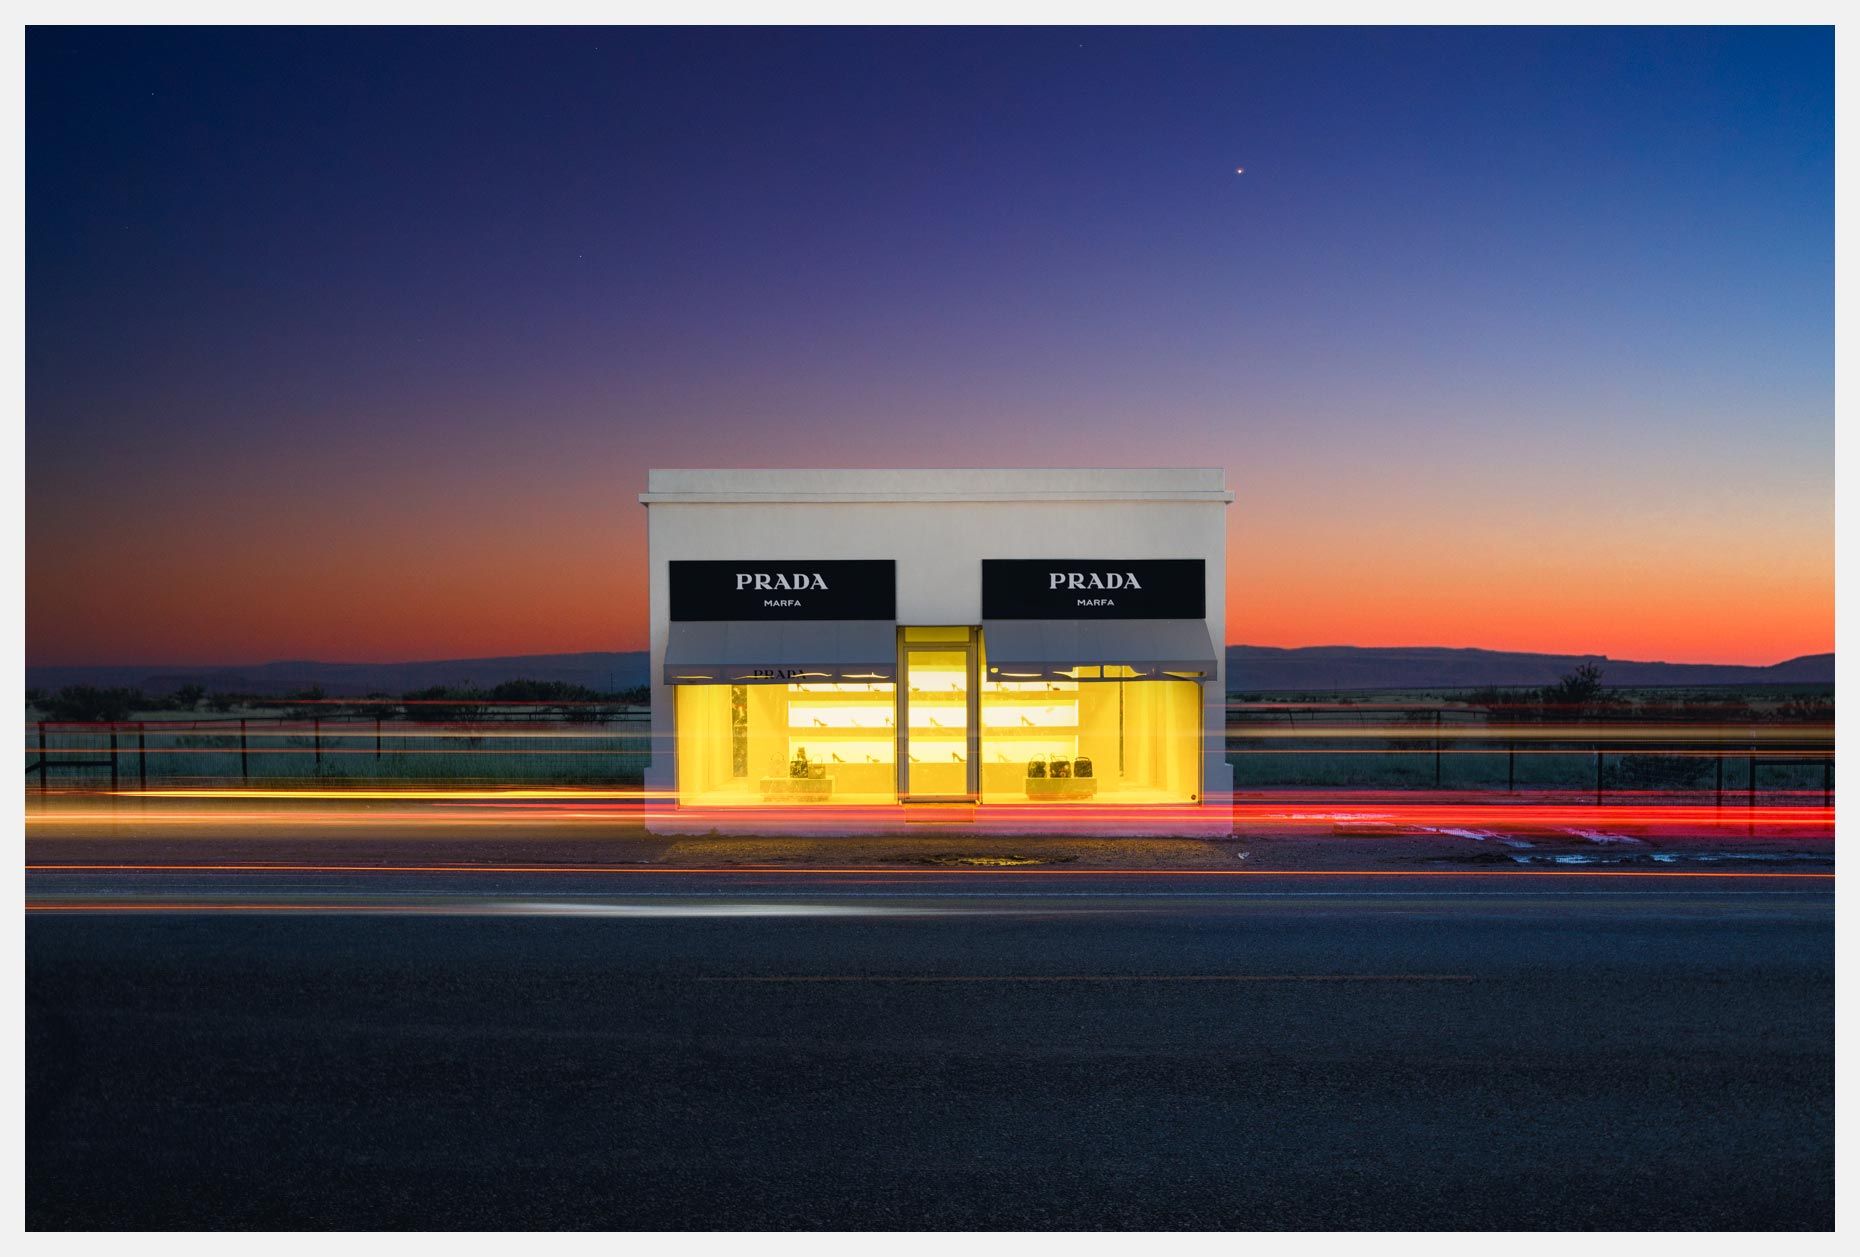 Prada-Marfa-Texas-Sunset